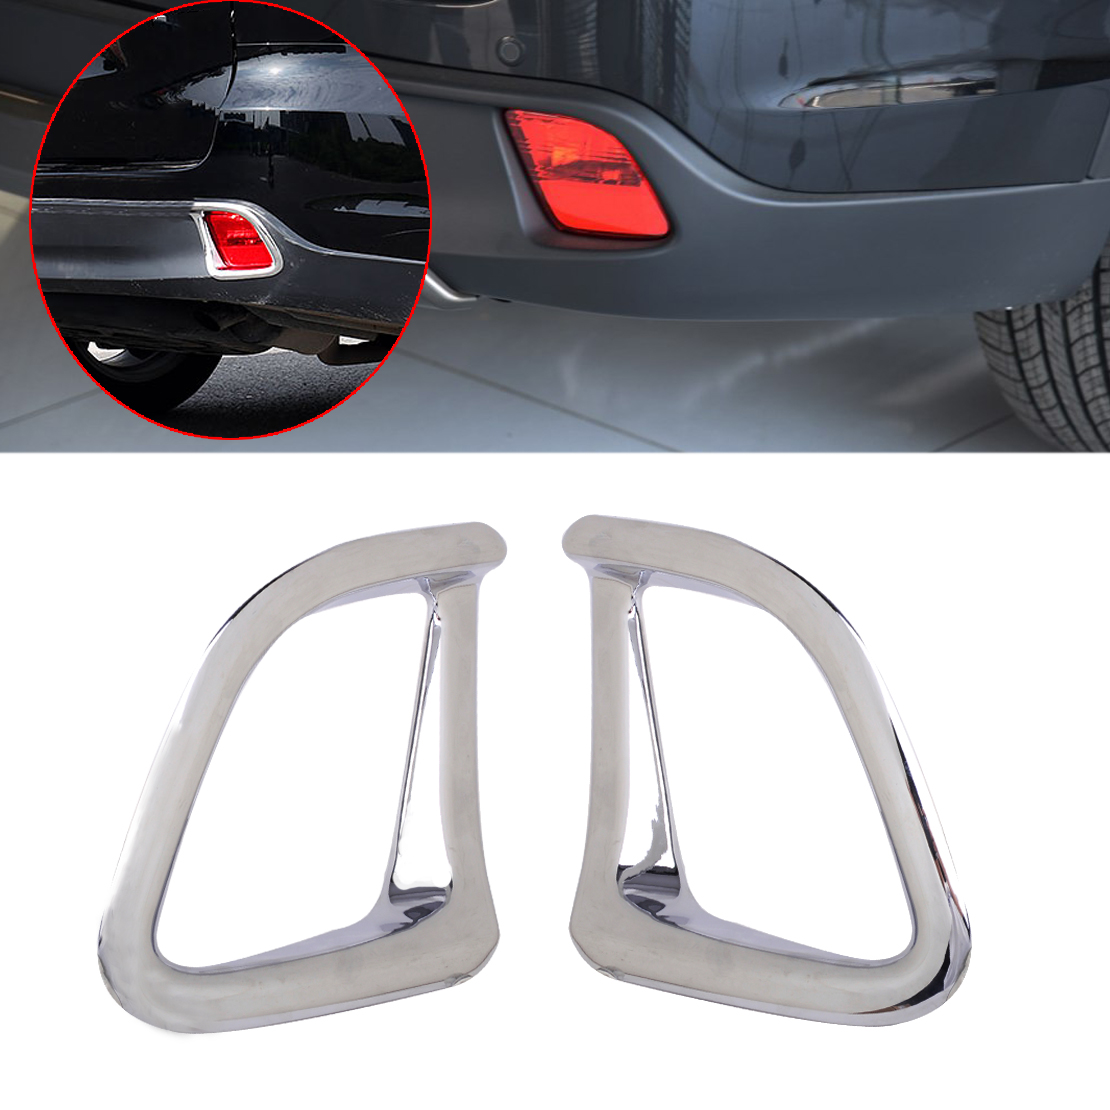 DWCX New Car Styling Chrome Plated Plastic Silver Rear Fog Light Lamp Cover Trim fit for Toyota Highlander 2014 2015 2016 2017